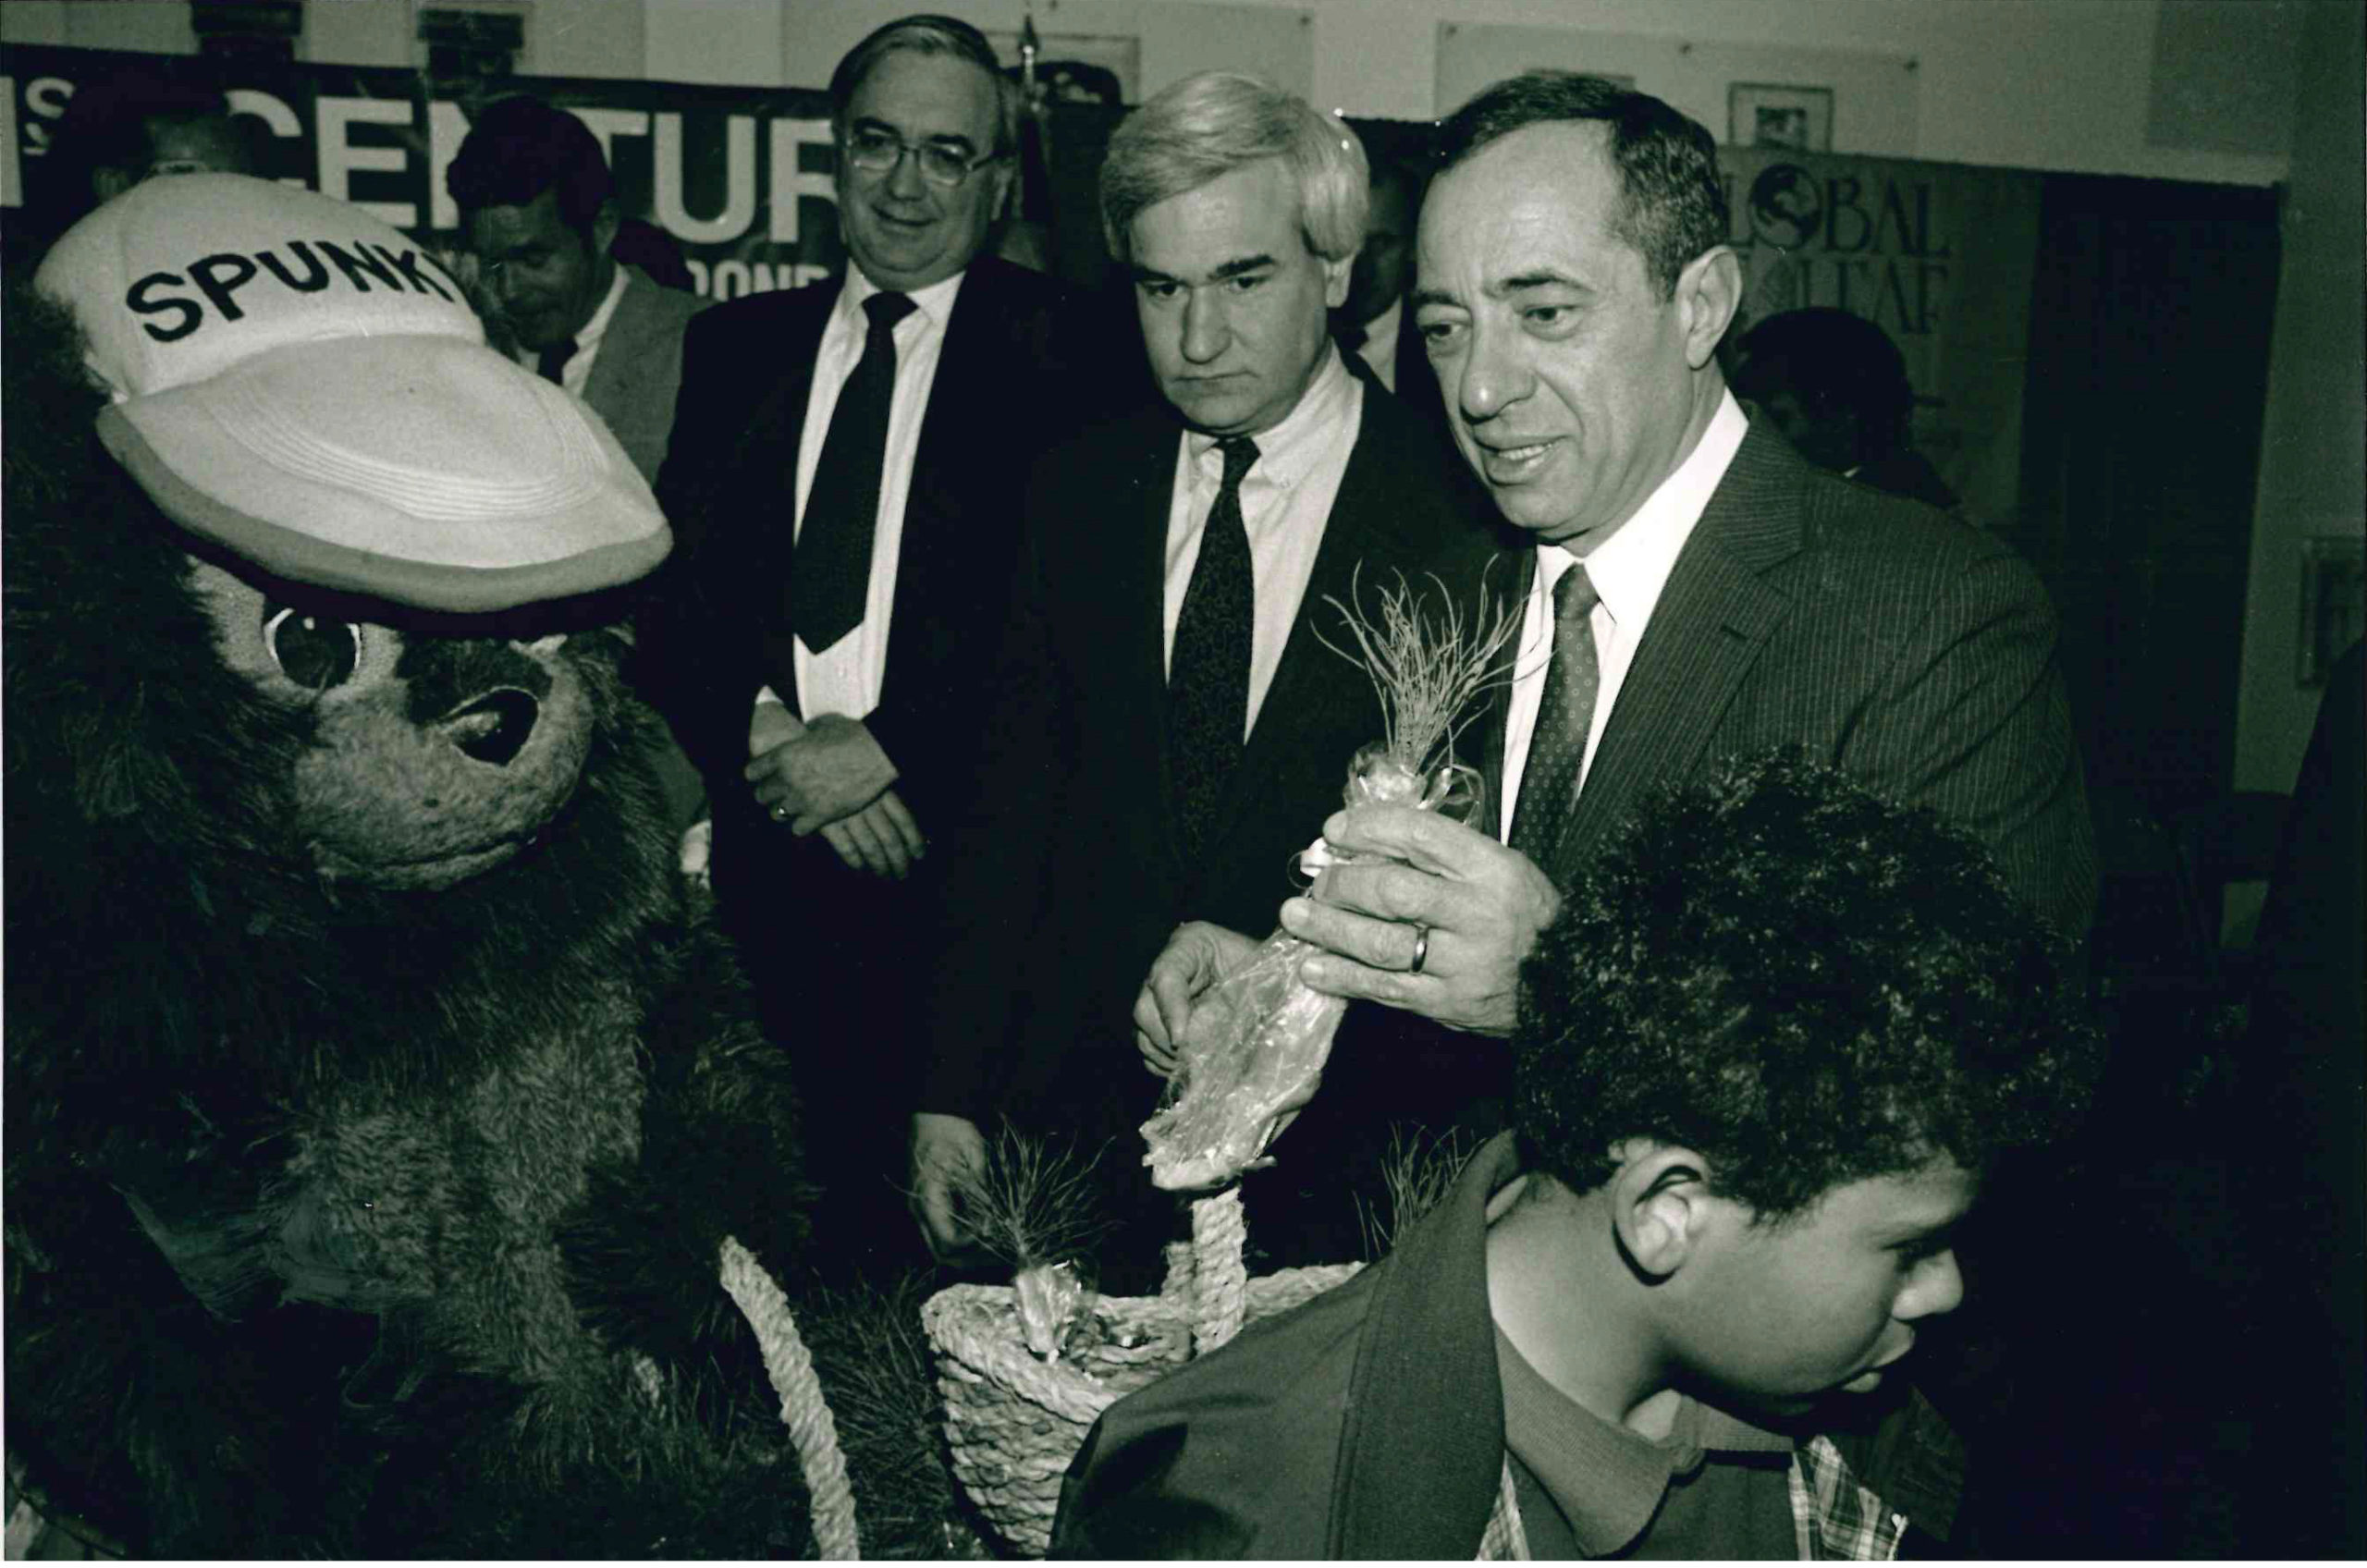 American Forests executive vice president at the time stands with the New York state department of environmental conservation commissioner as Governor Mario Cuomo and our (since retired) mascot Spunky hand out seedlings to school children in 1990.